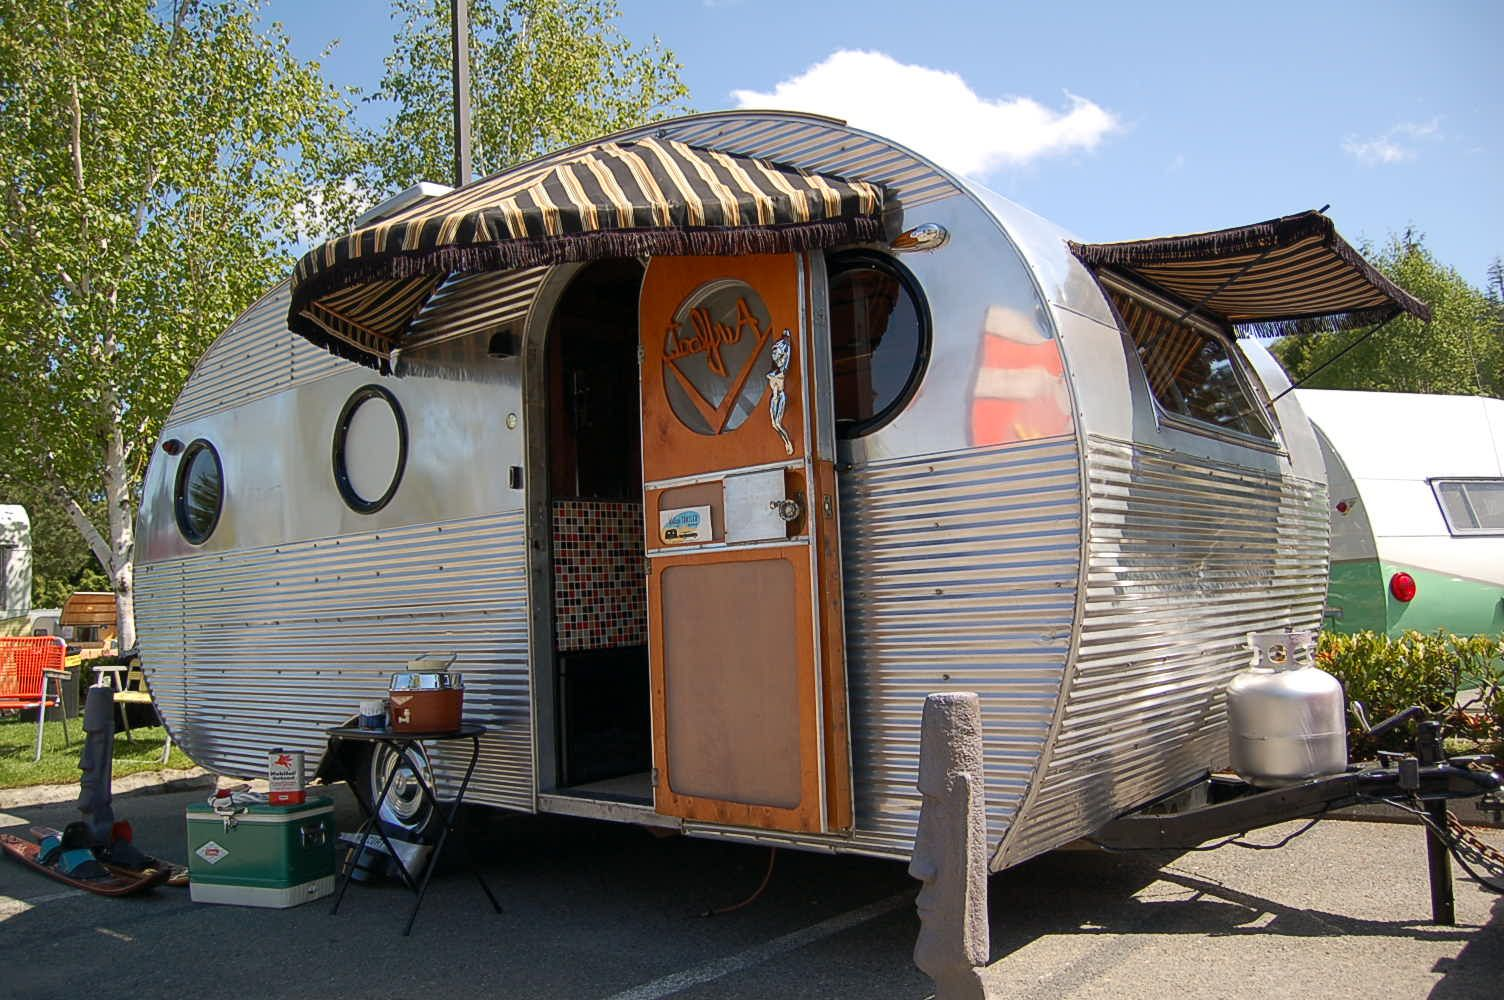 1952 Airfloat Vintage Trailer With Portal Windows And Cool